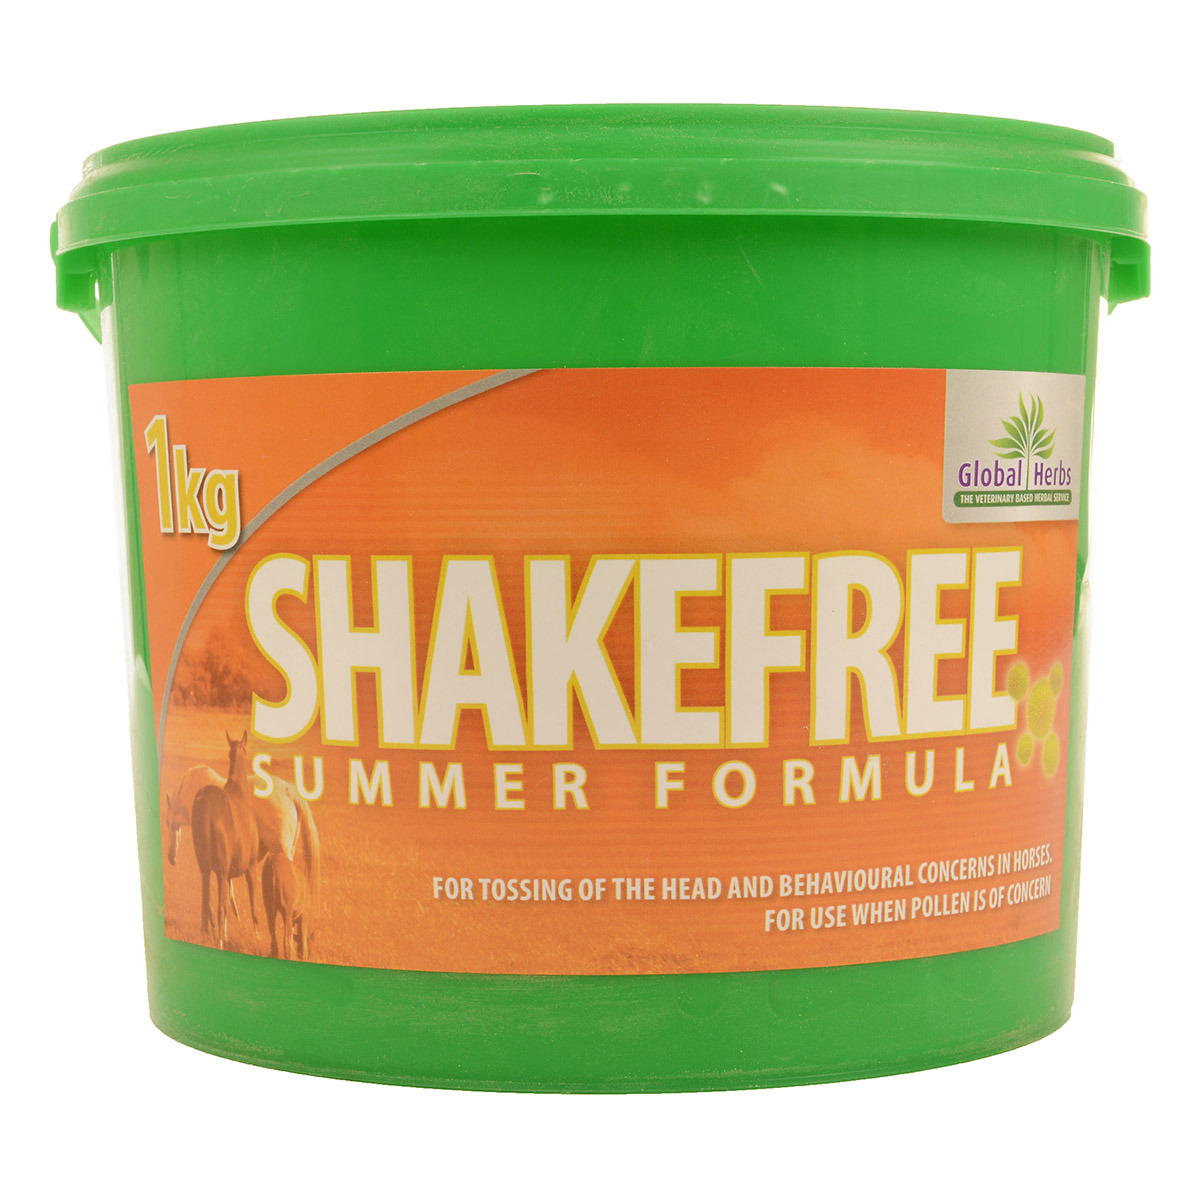 Shakefree (all seasons)